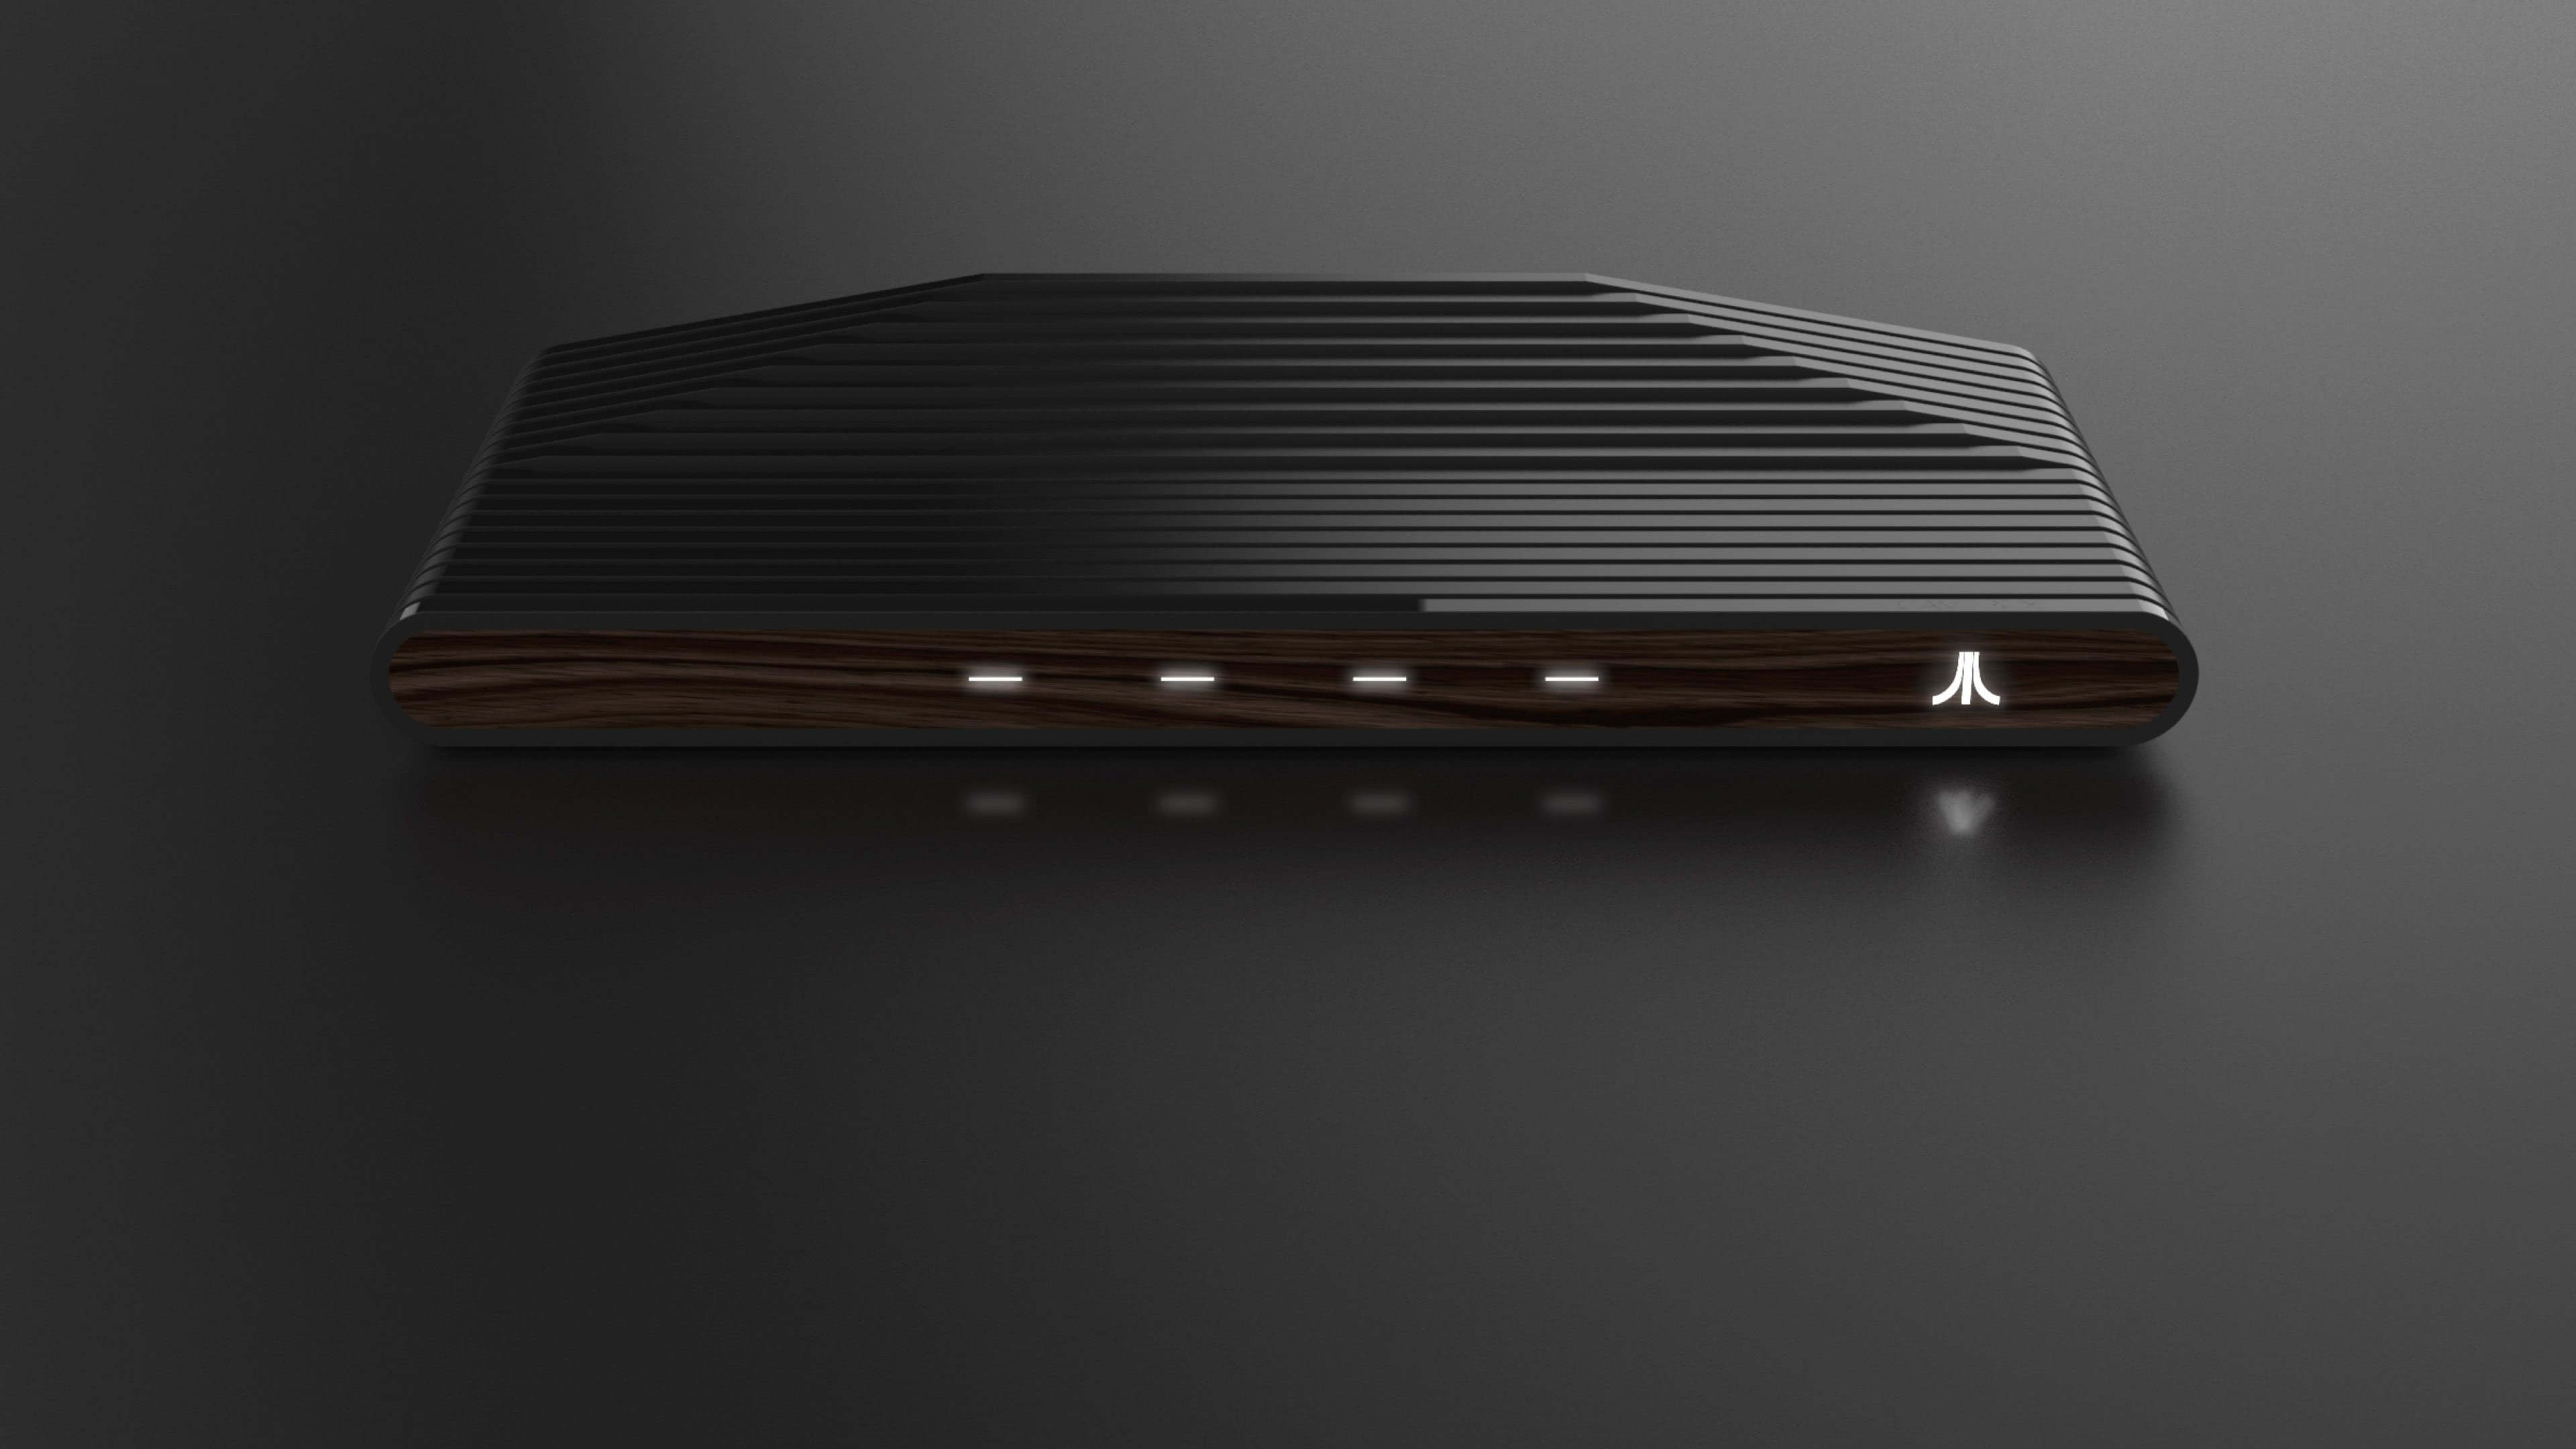 ataribox retro game console uhd 4k wallpaper